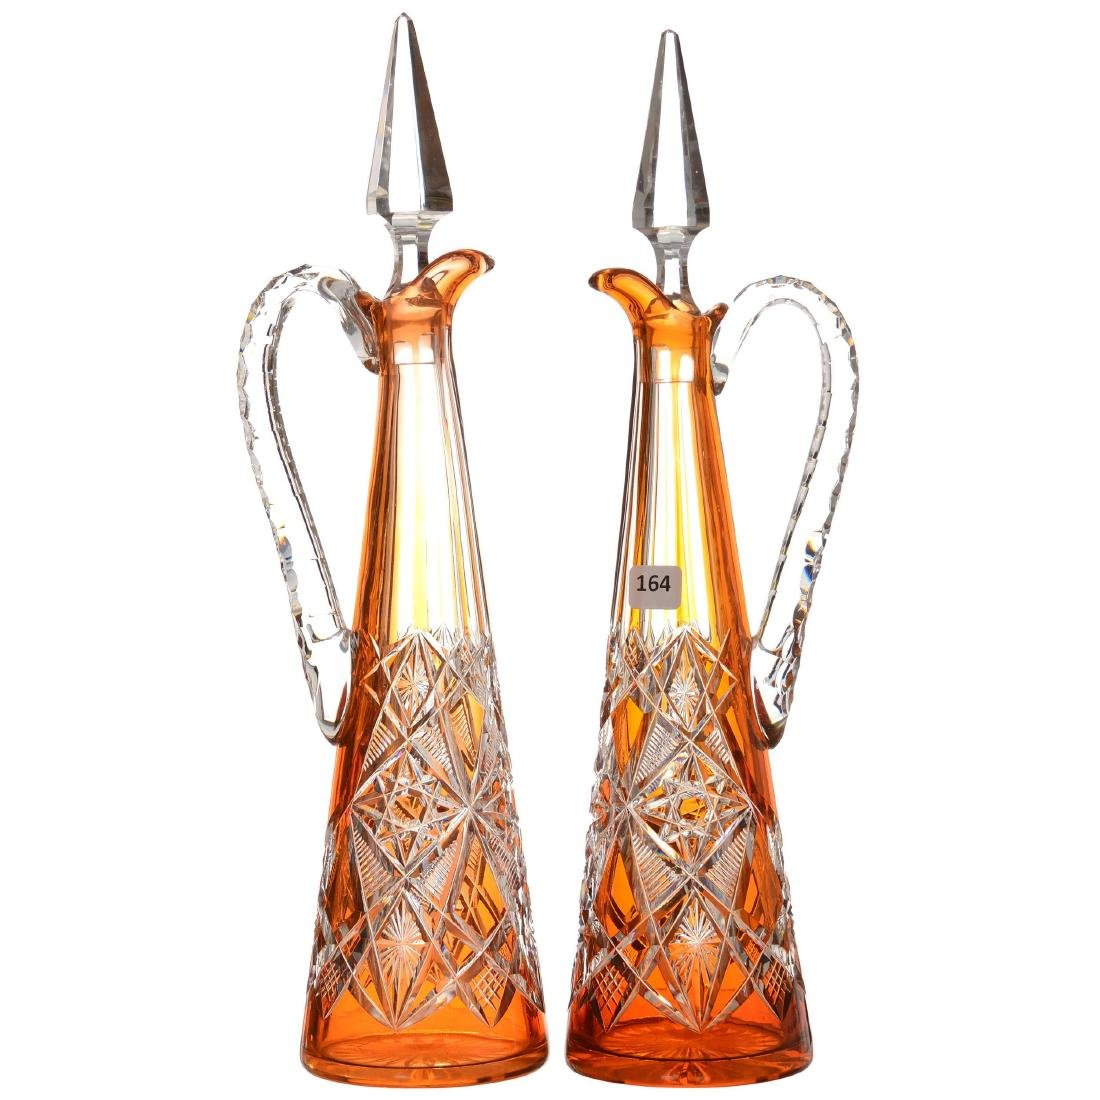 (2) Handled Apricot Cut to Clear Decanters